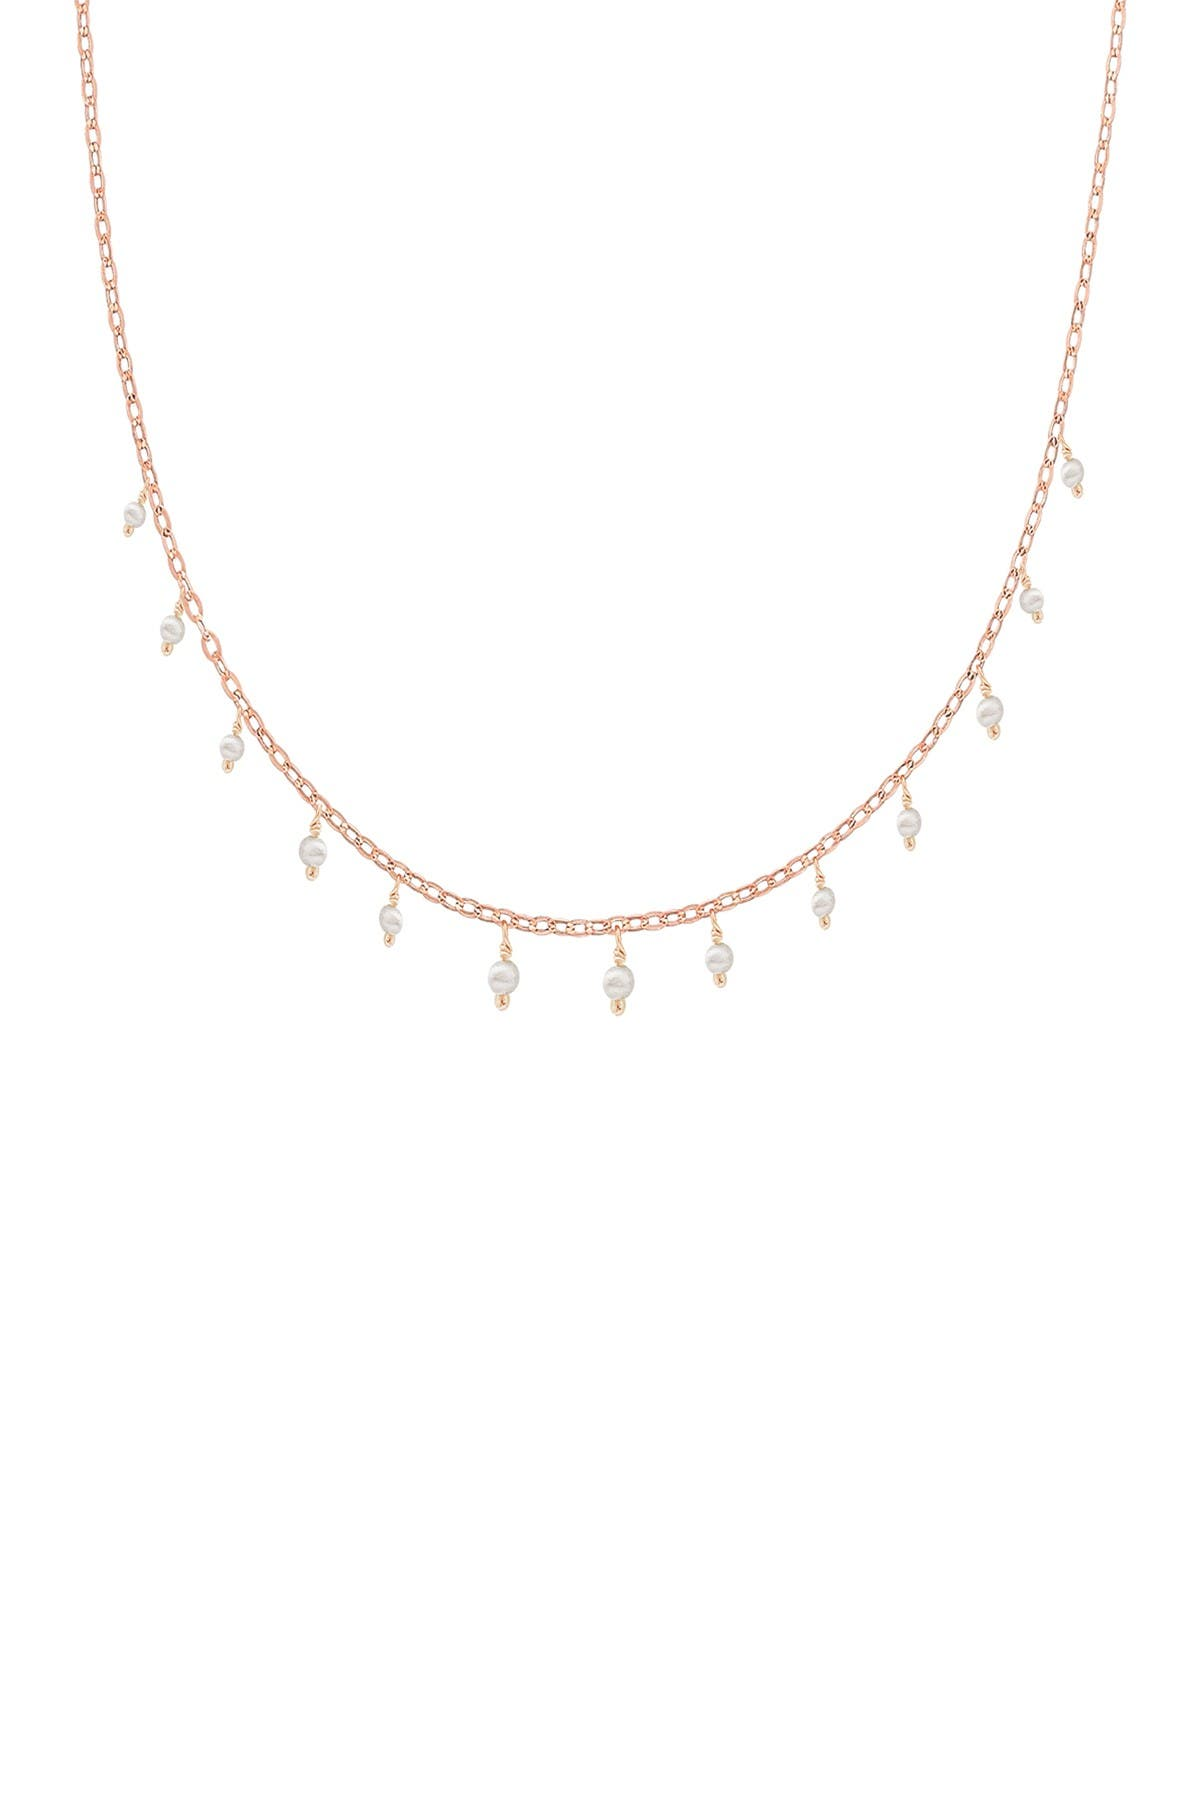 Image of Savvy Cie 18K Rose Gold Vermeil 2.5mm Japanese Seed Pearl Choker Necklace